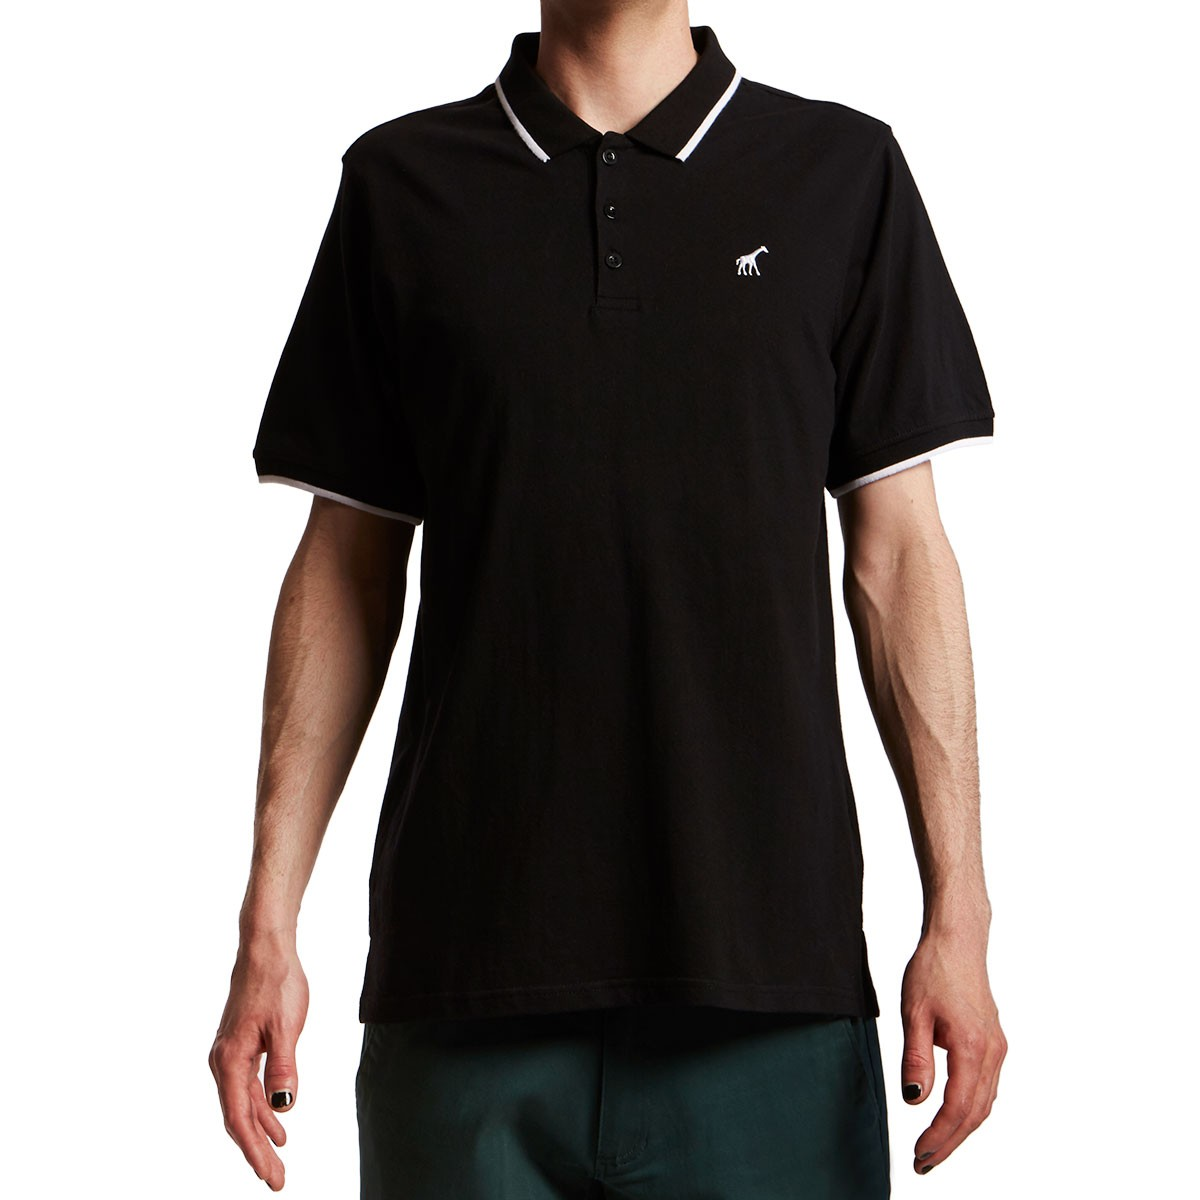 Lrg jiggy type polo shirt black for Different types of polo shirts